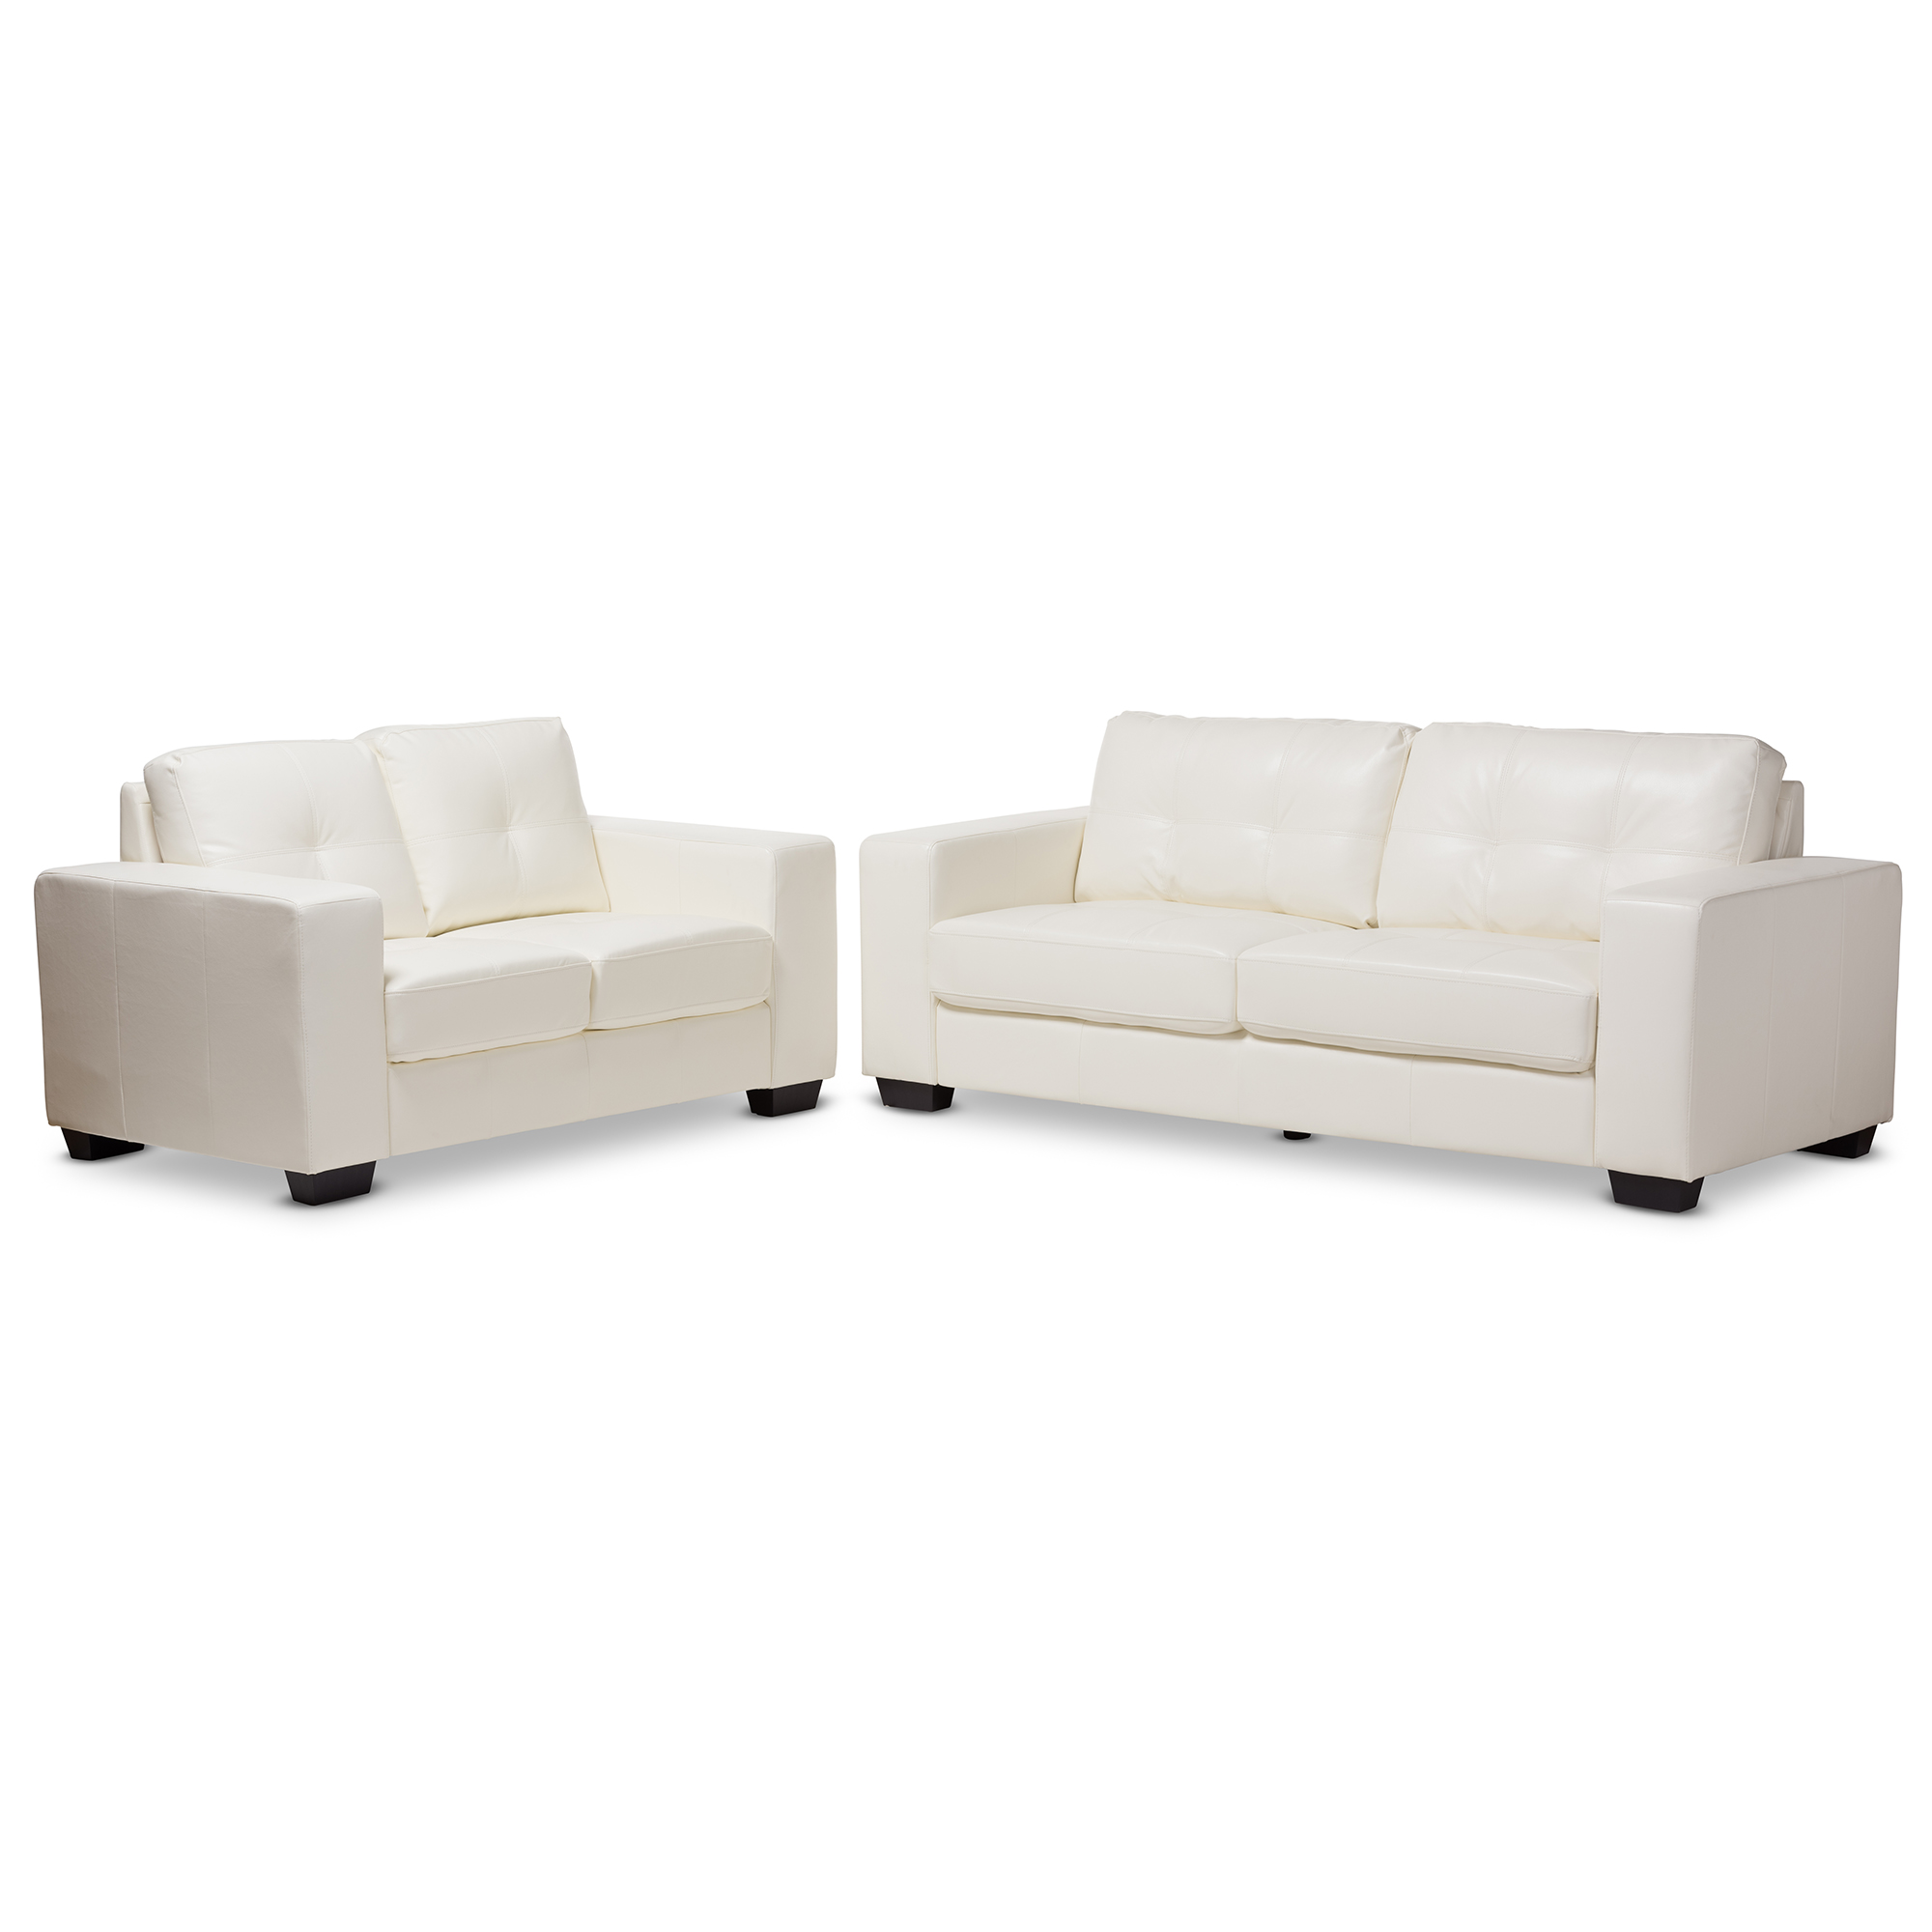 Baxton Studio Adalynn Modern and Contemporary White Faux ...